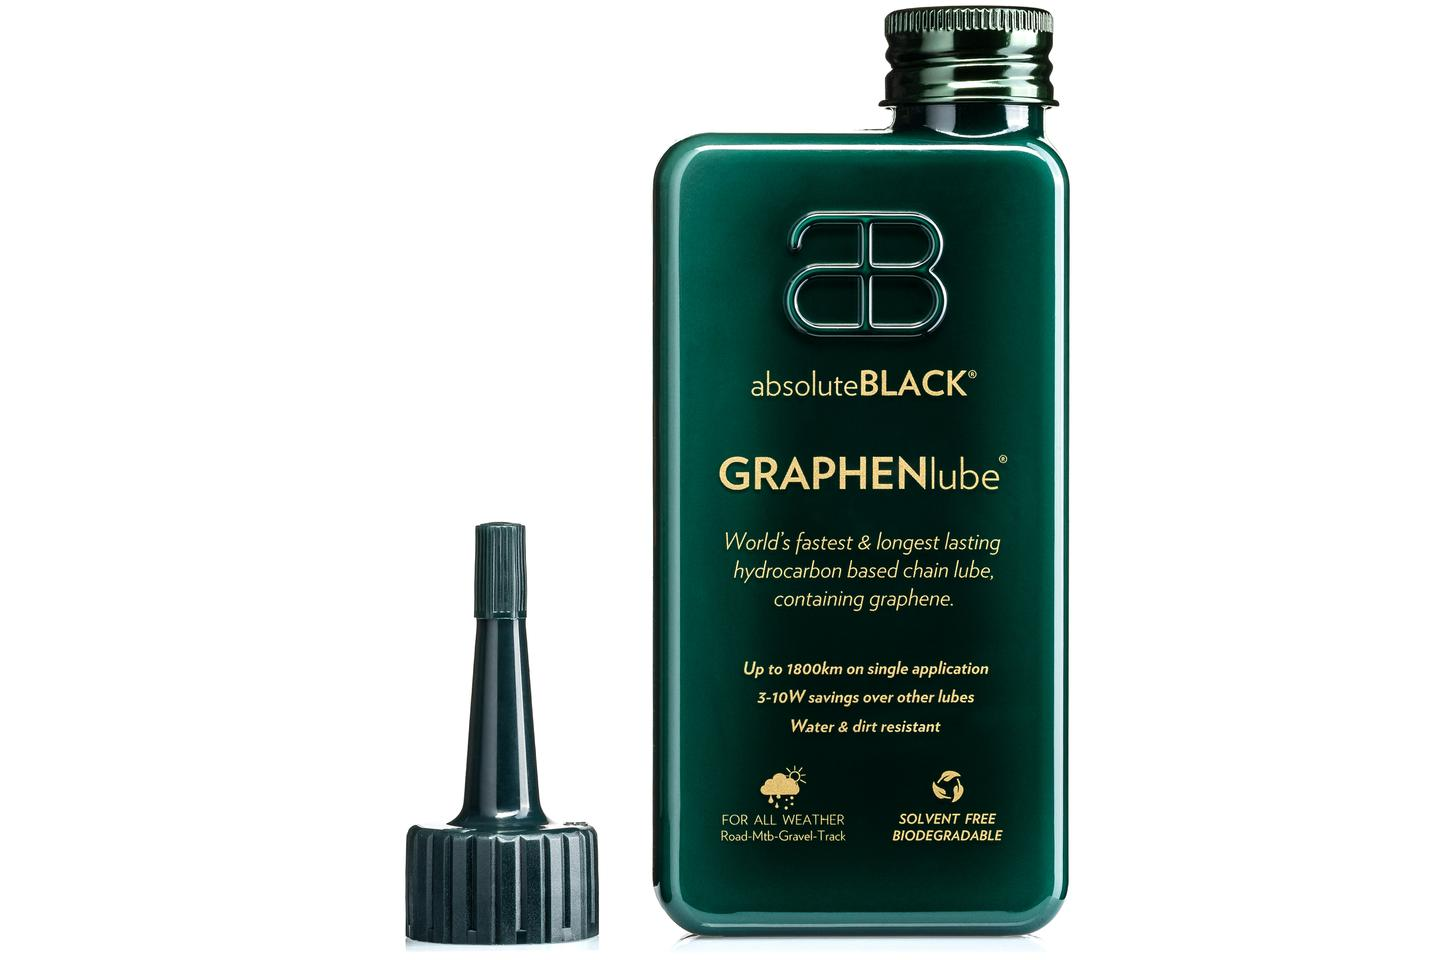 One application of GRAPHENlube is said to last for over 1,800 km (1,118 miles)